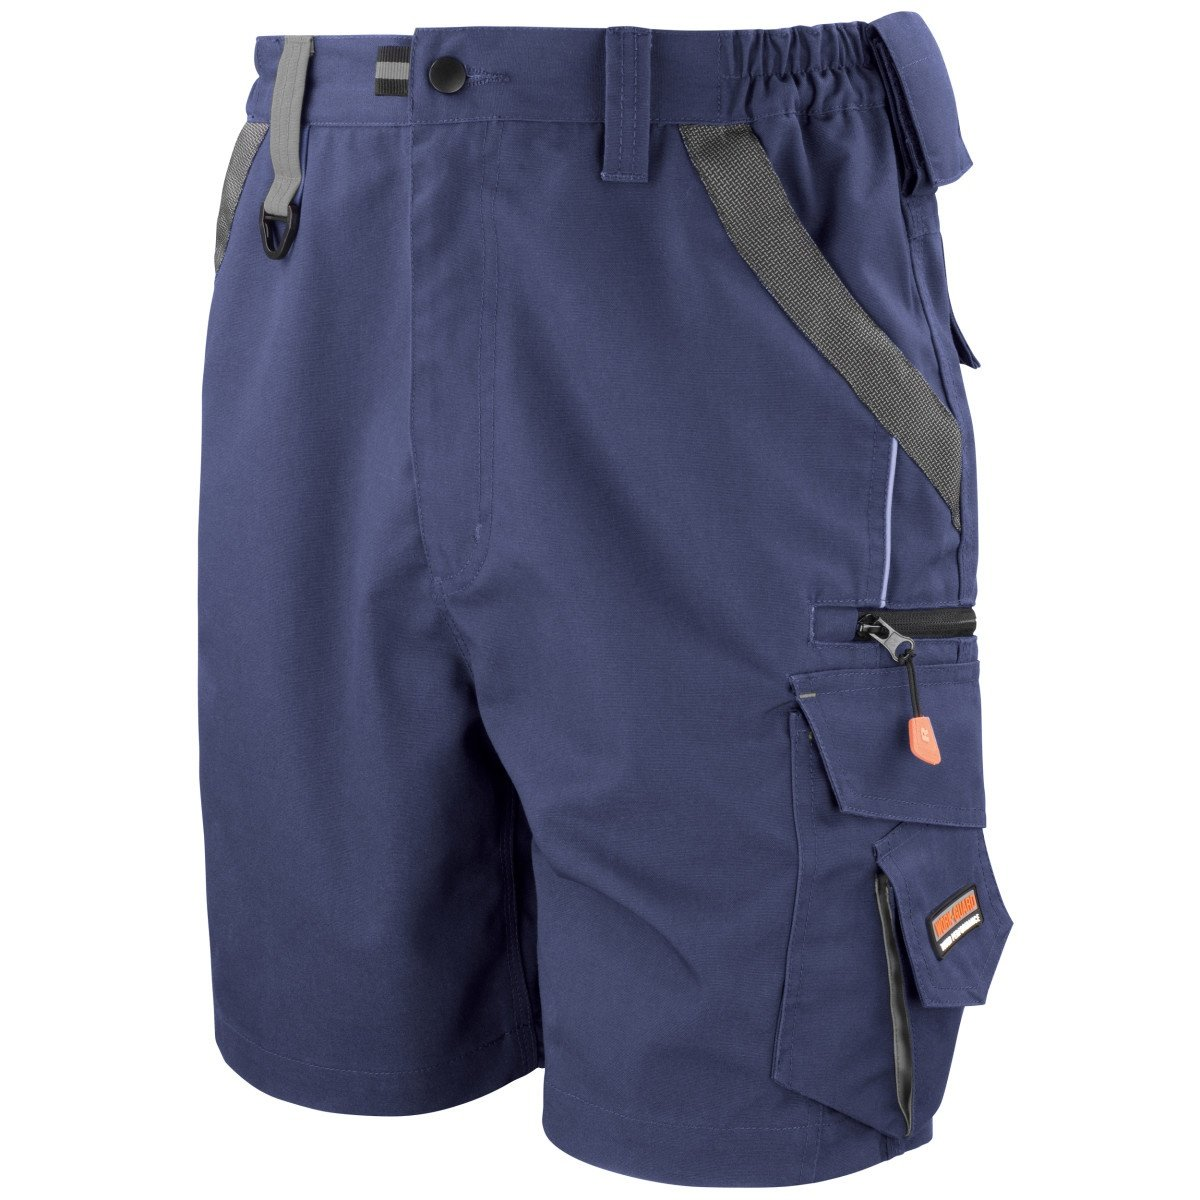 Result Workguard Unisex Technical Work Shorts